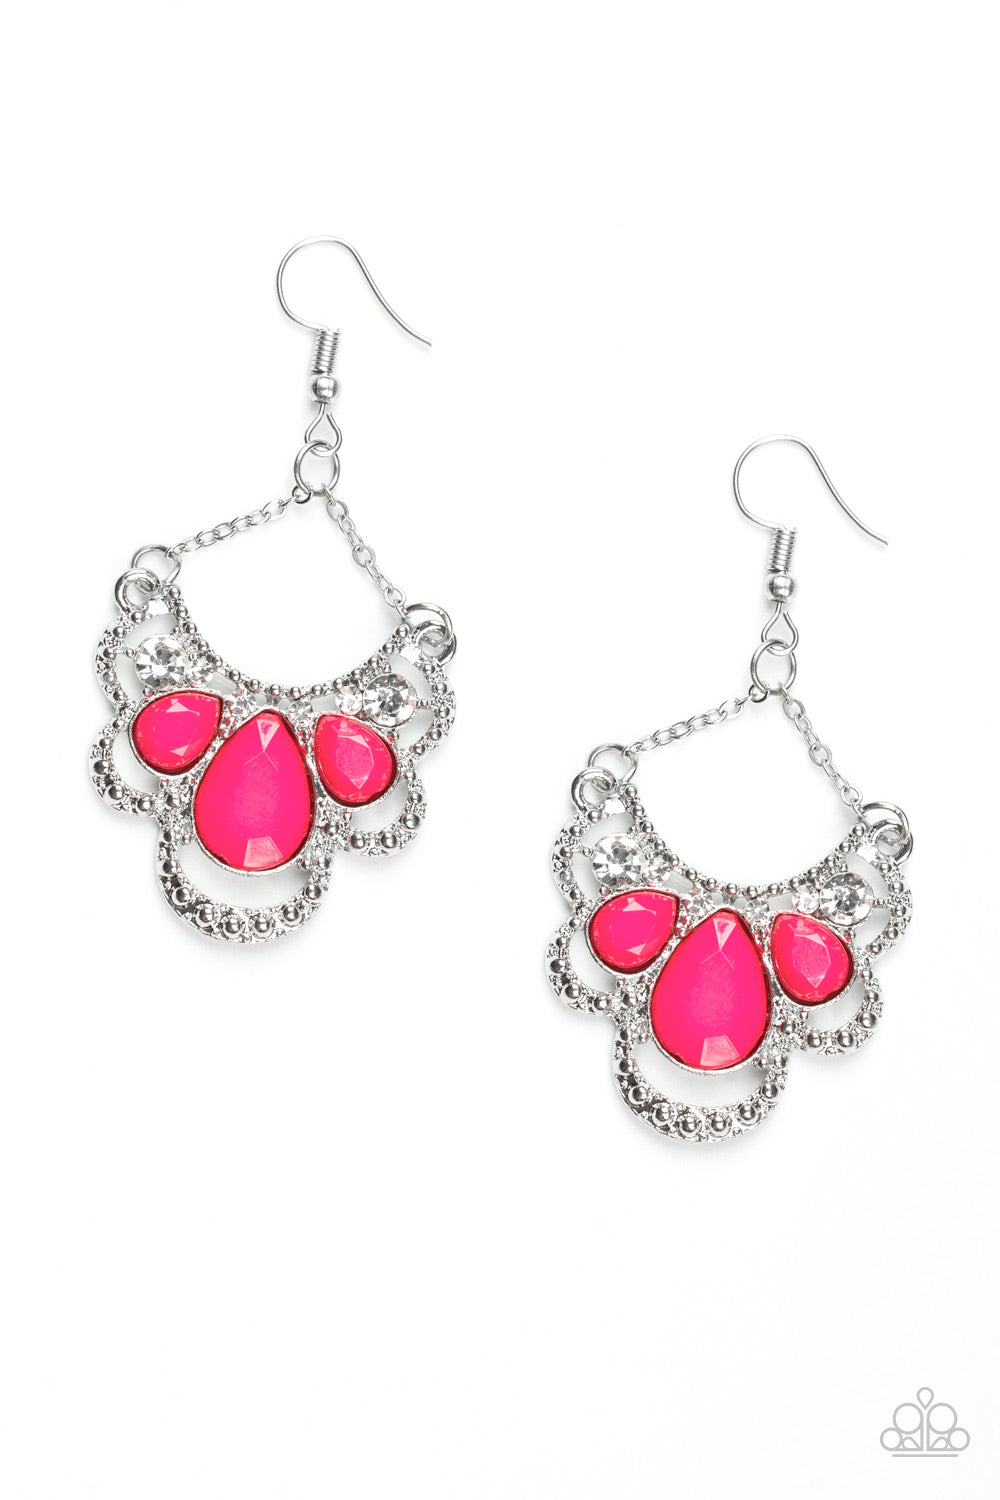 Paparazzi Accessories - Caribbean Royalty - Pink Earrings - JMJ Jewelry Collection